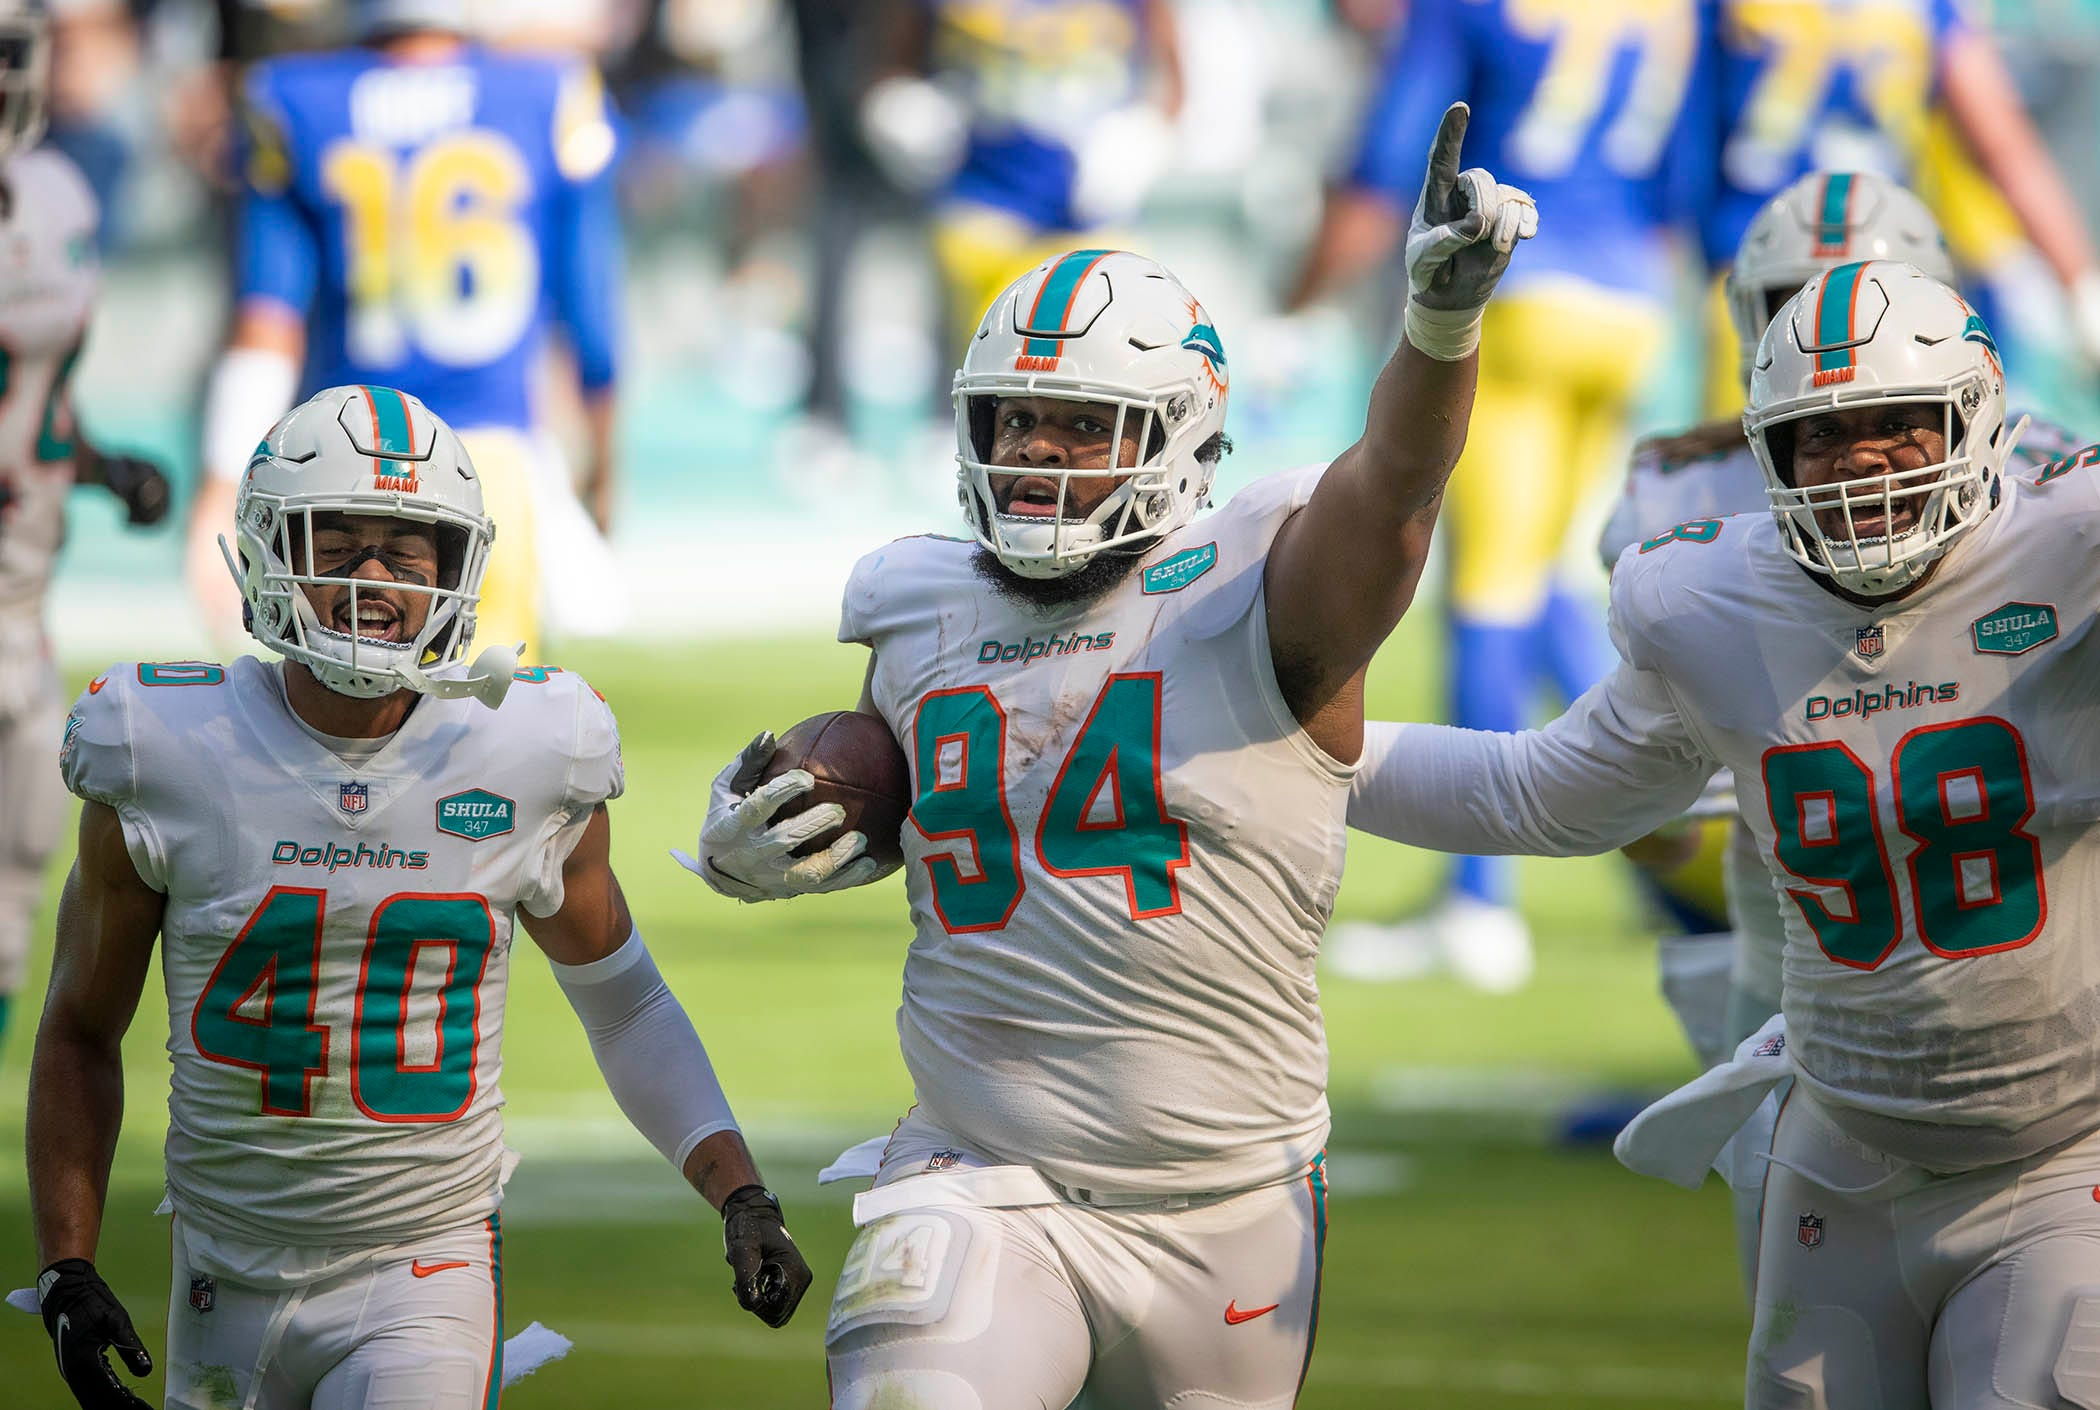 Tua Tagovailoa gets plenty of help from Miami Dolphins for win in first start